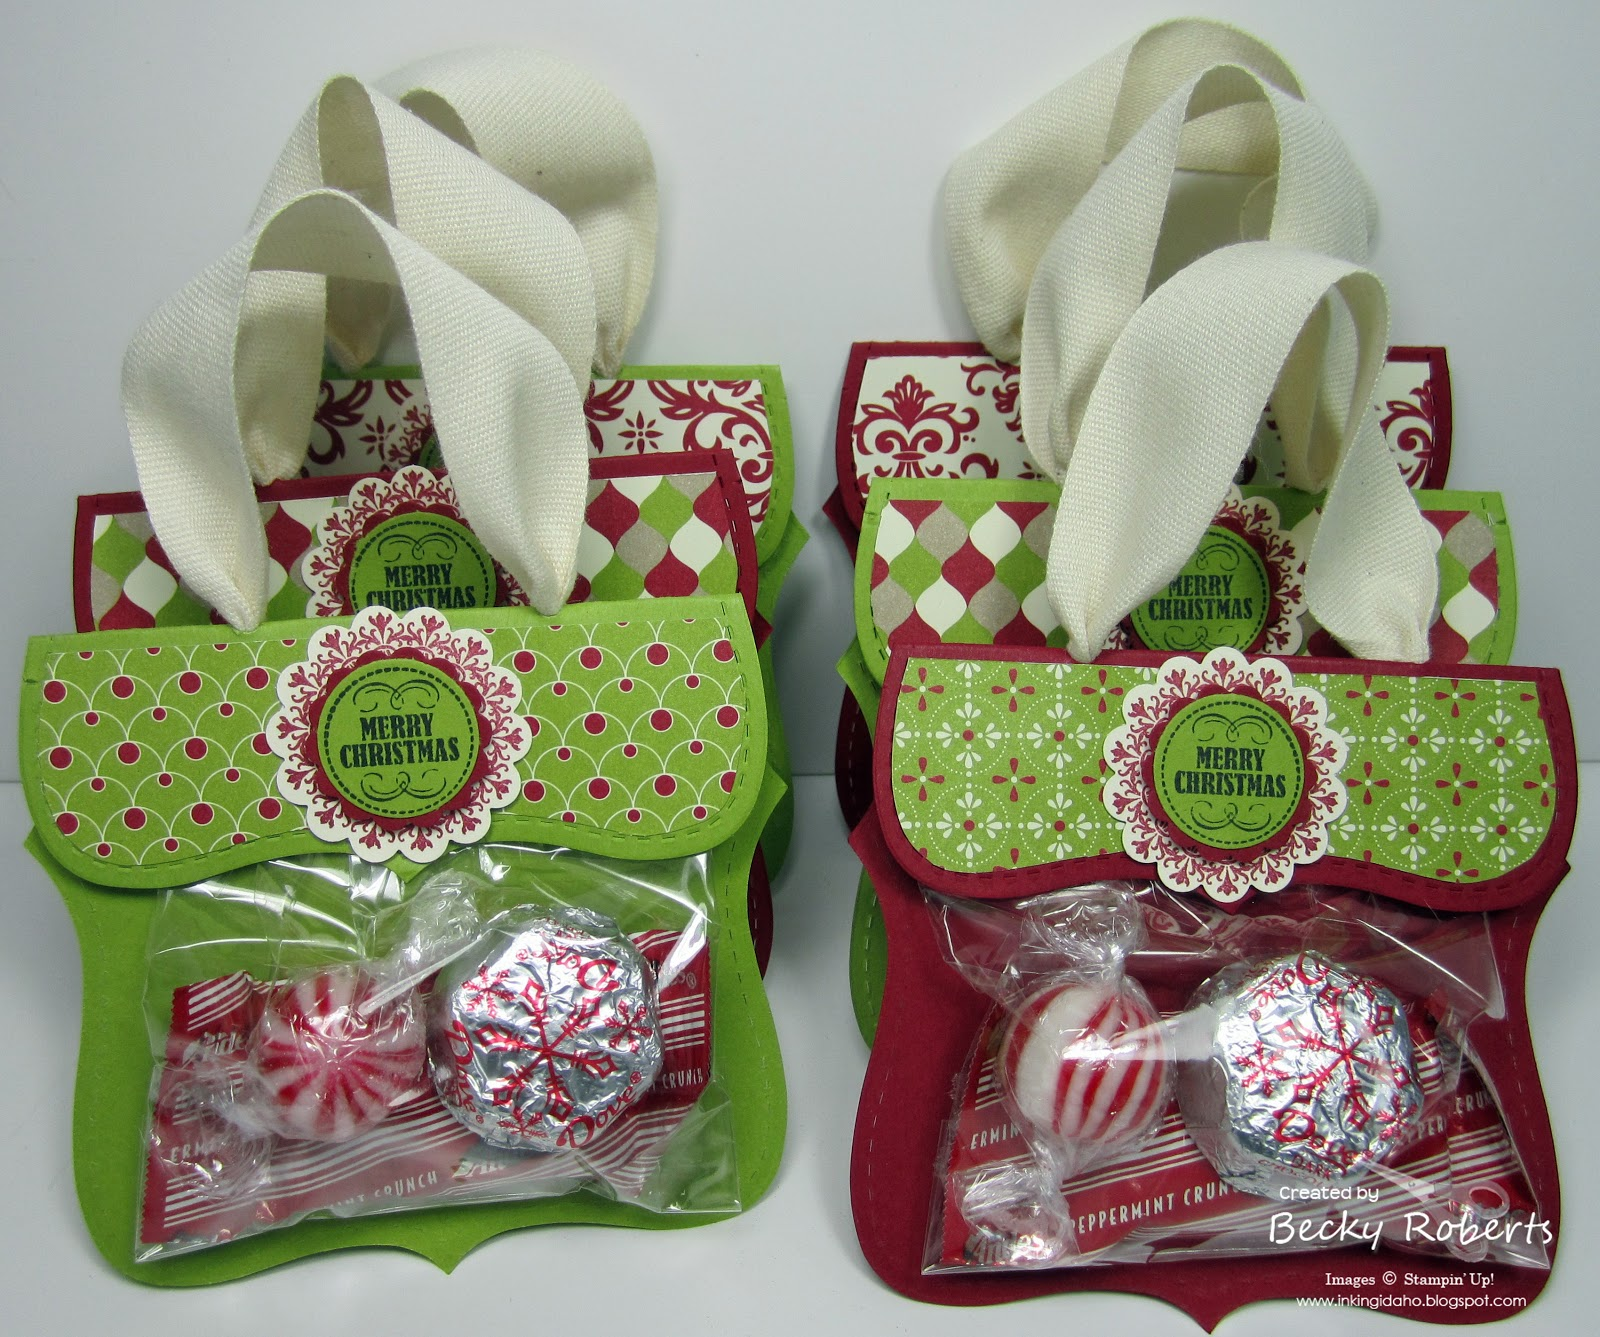 Inking idaho top note candy purses christmas